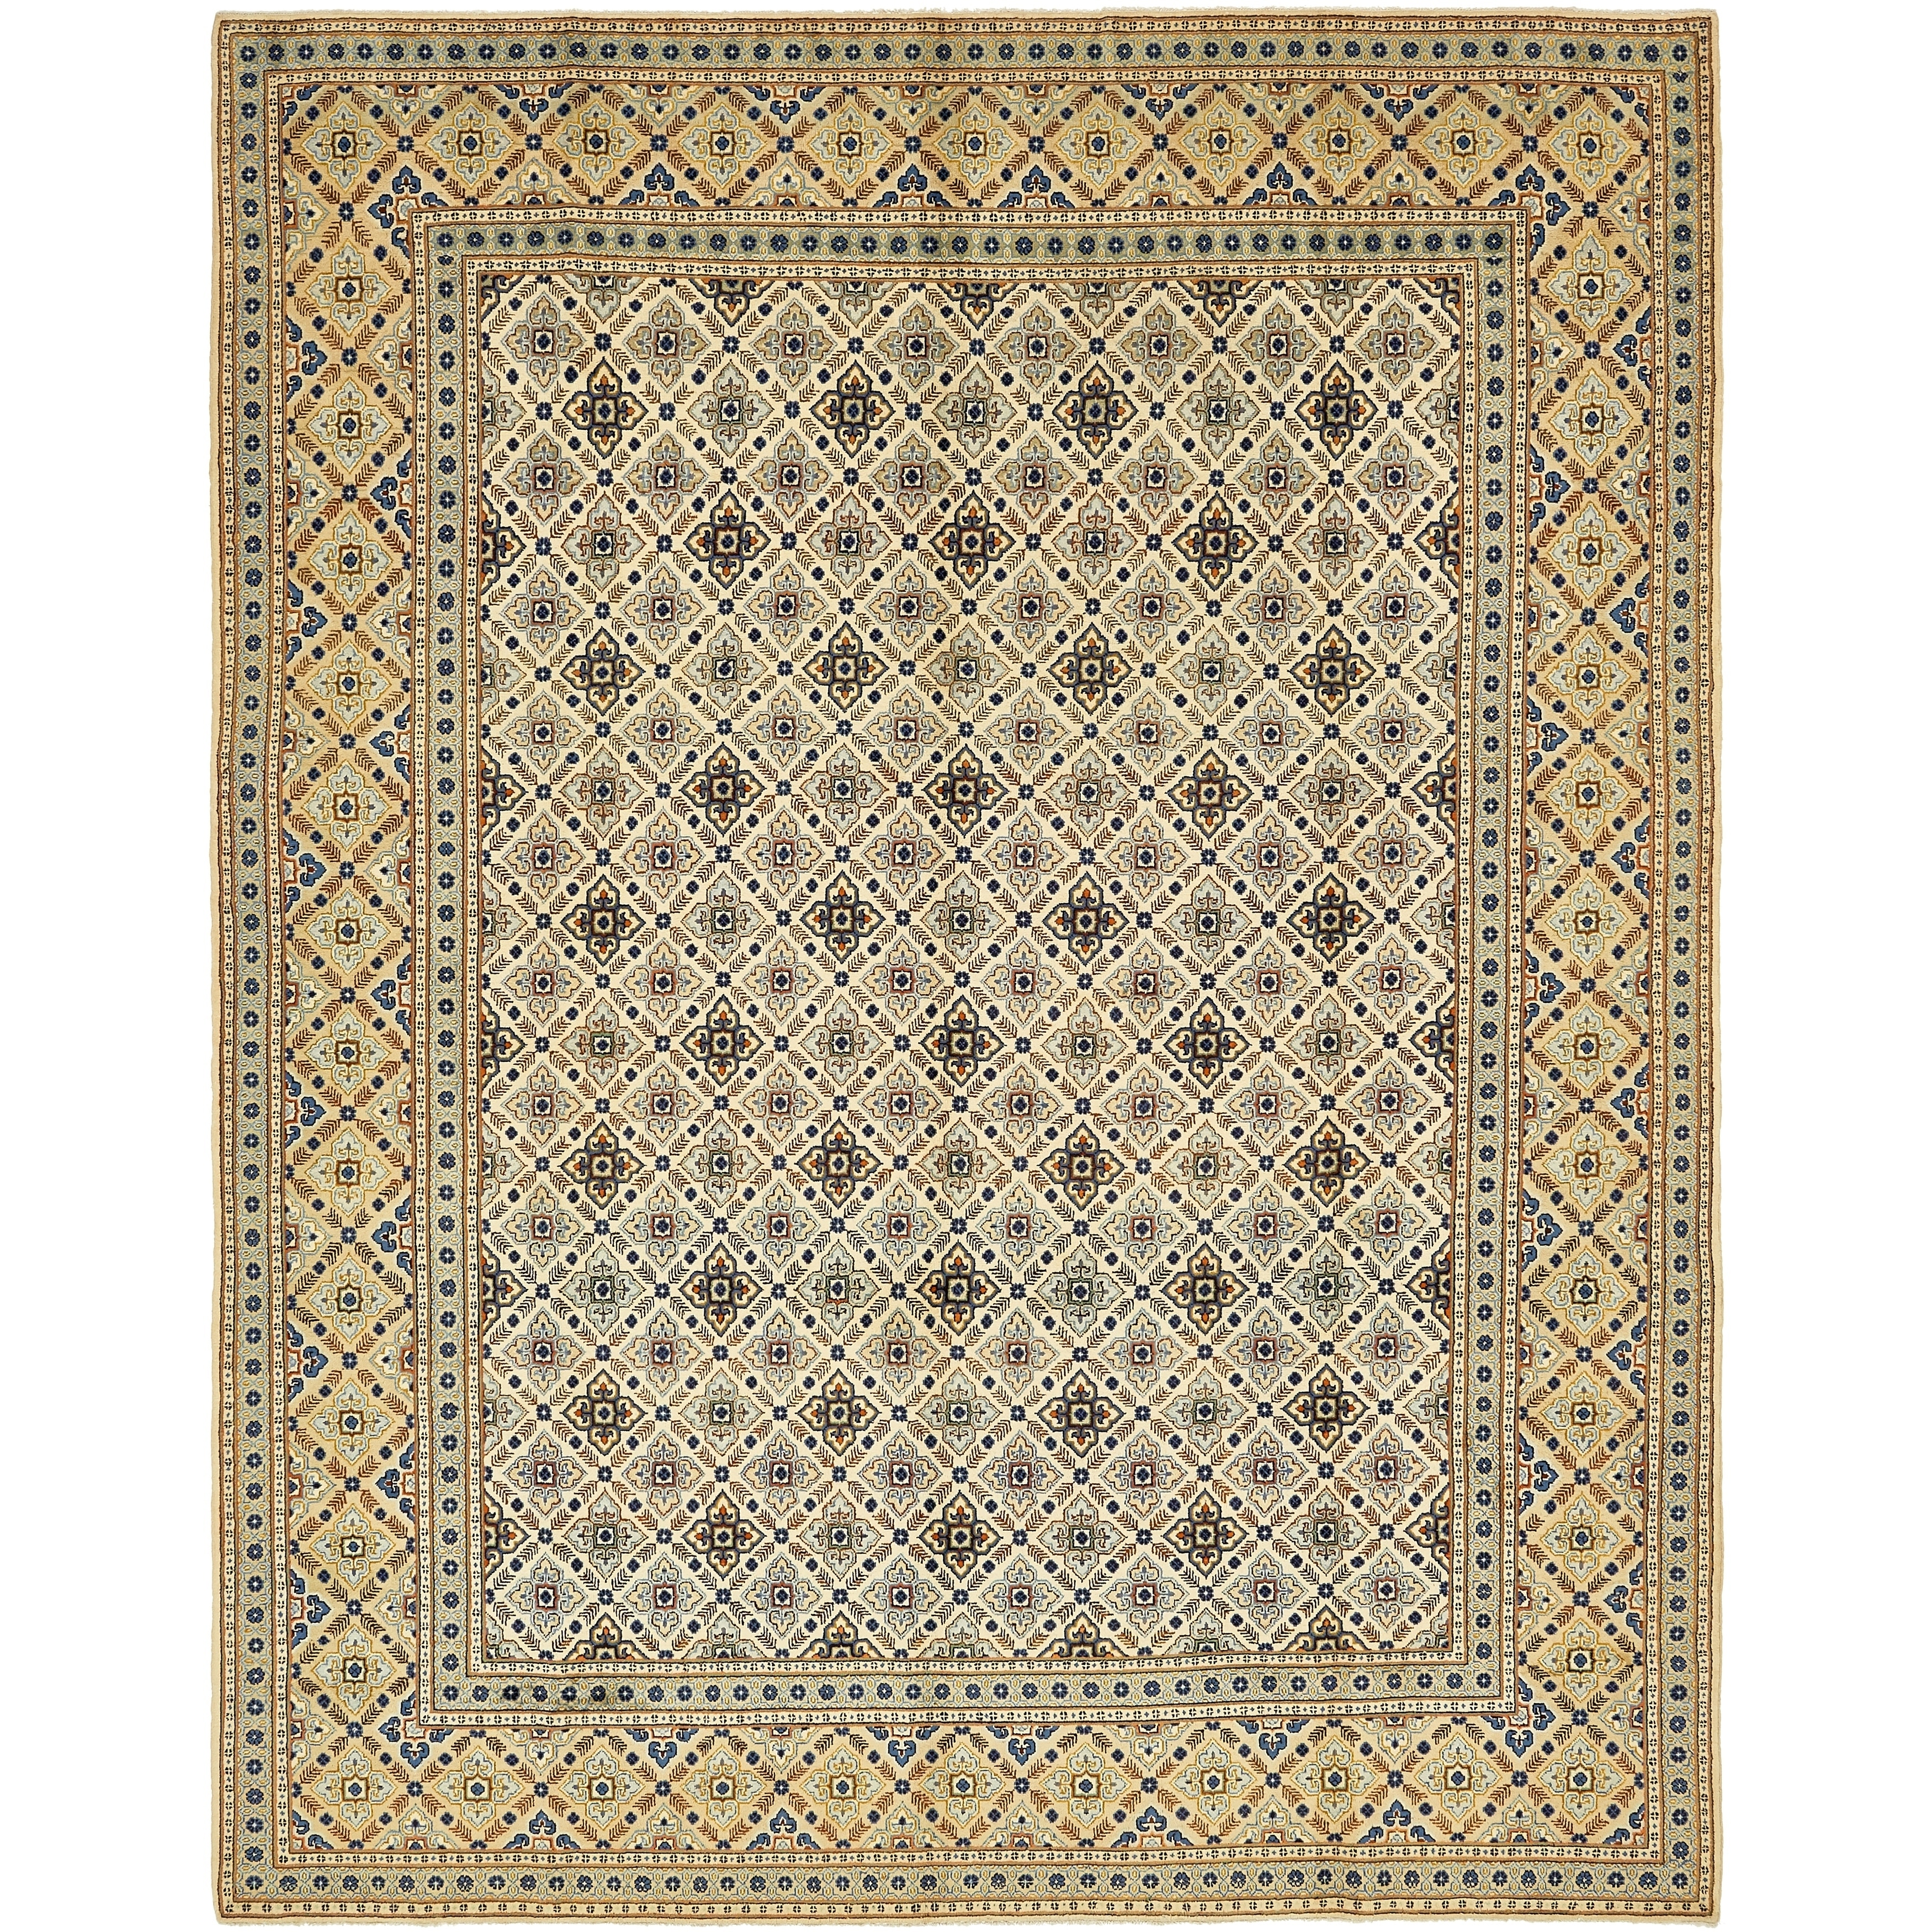 Hand Knotted Kashan Semi Antique Wool Area Rug - 9 10 x 12 5 (Ivory - 9 10 x 12 5)